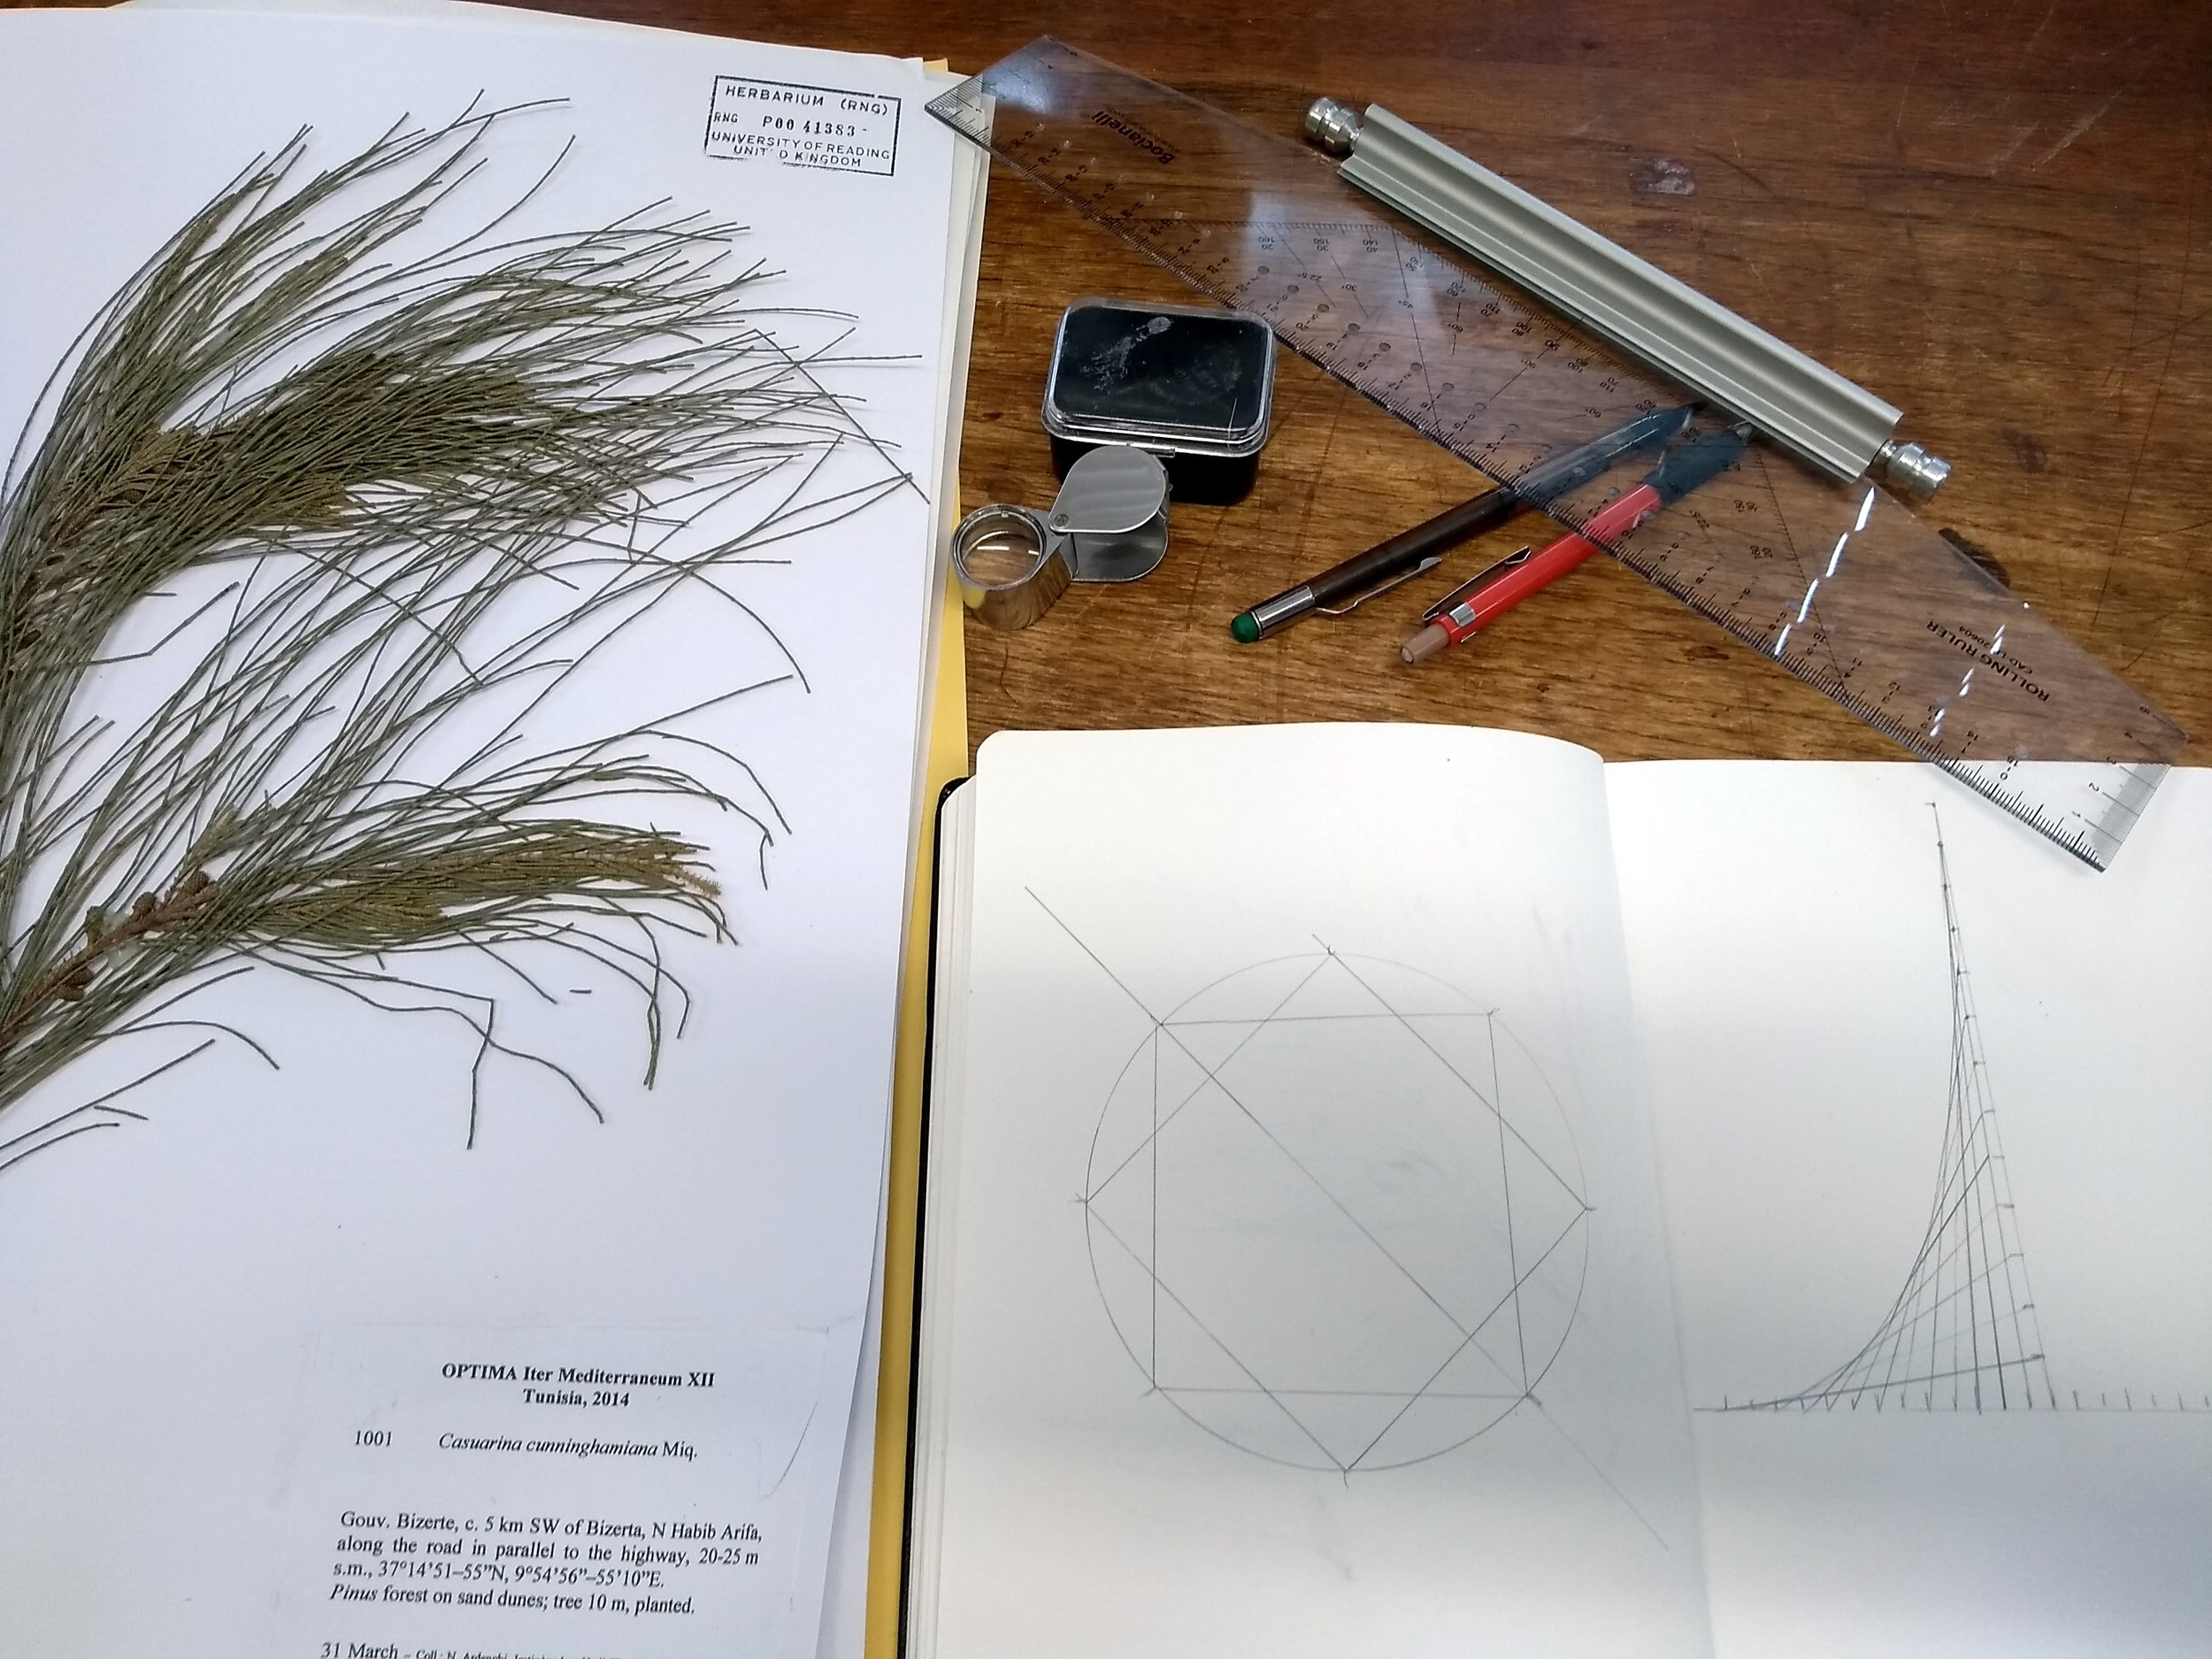 My notebook on the herbarium bench next to the casuarina specimen